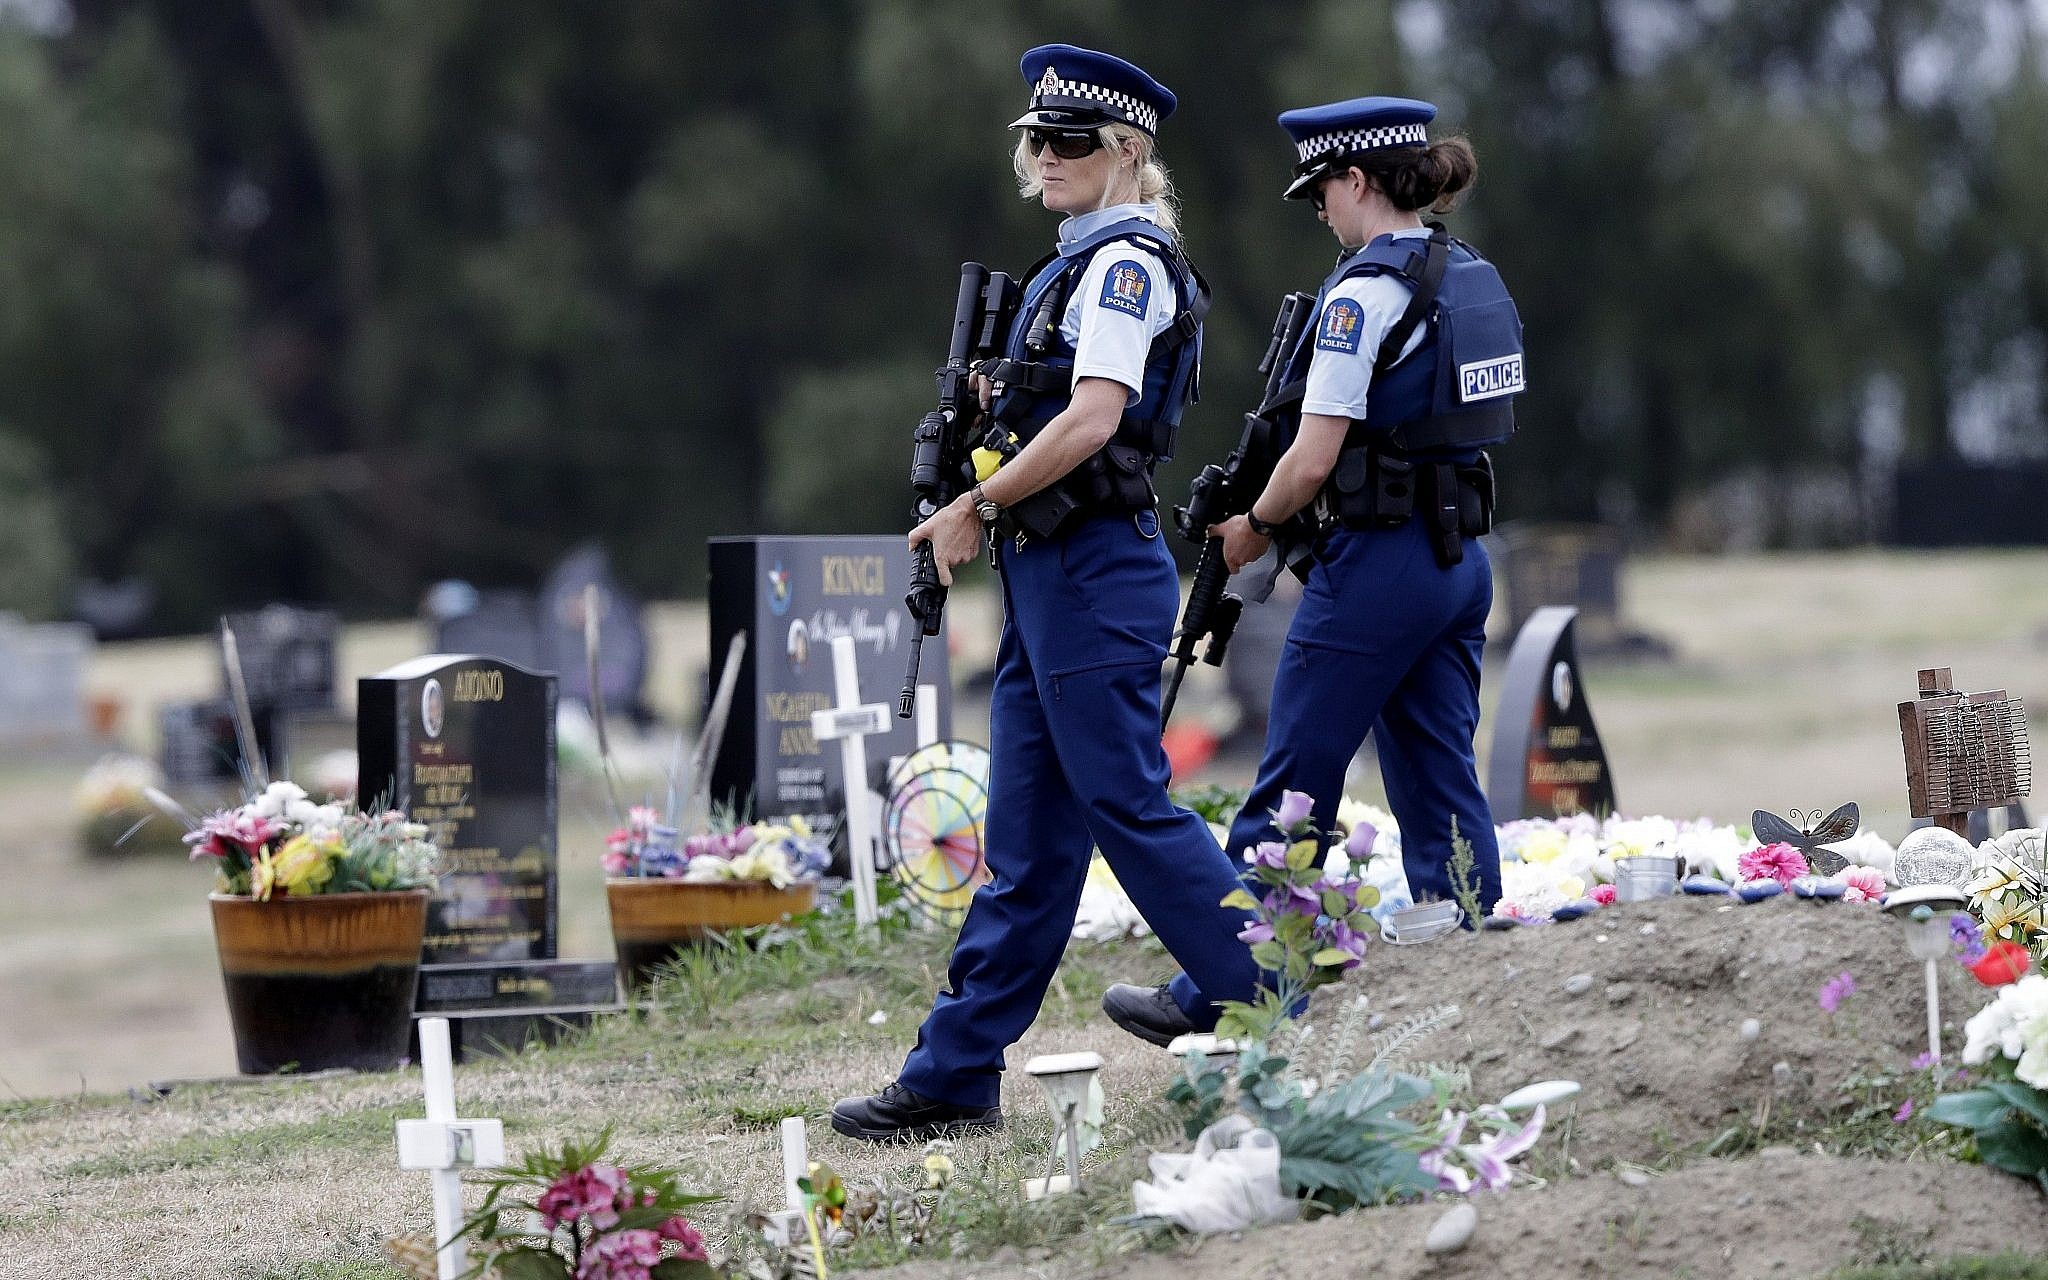 New Zealand police chief says only one shooter involved in Christchurch attack